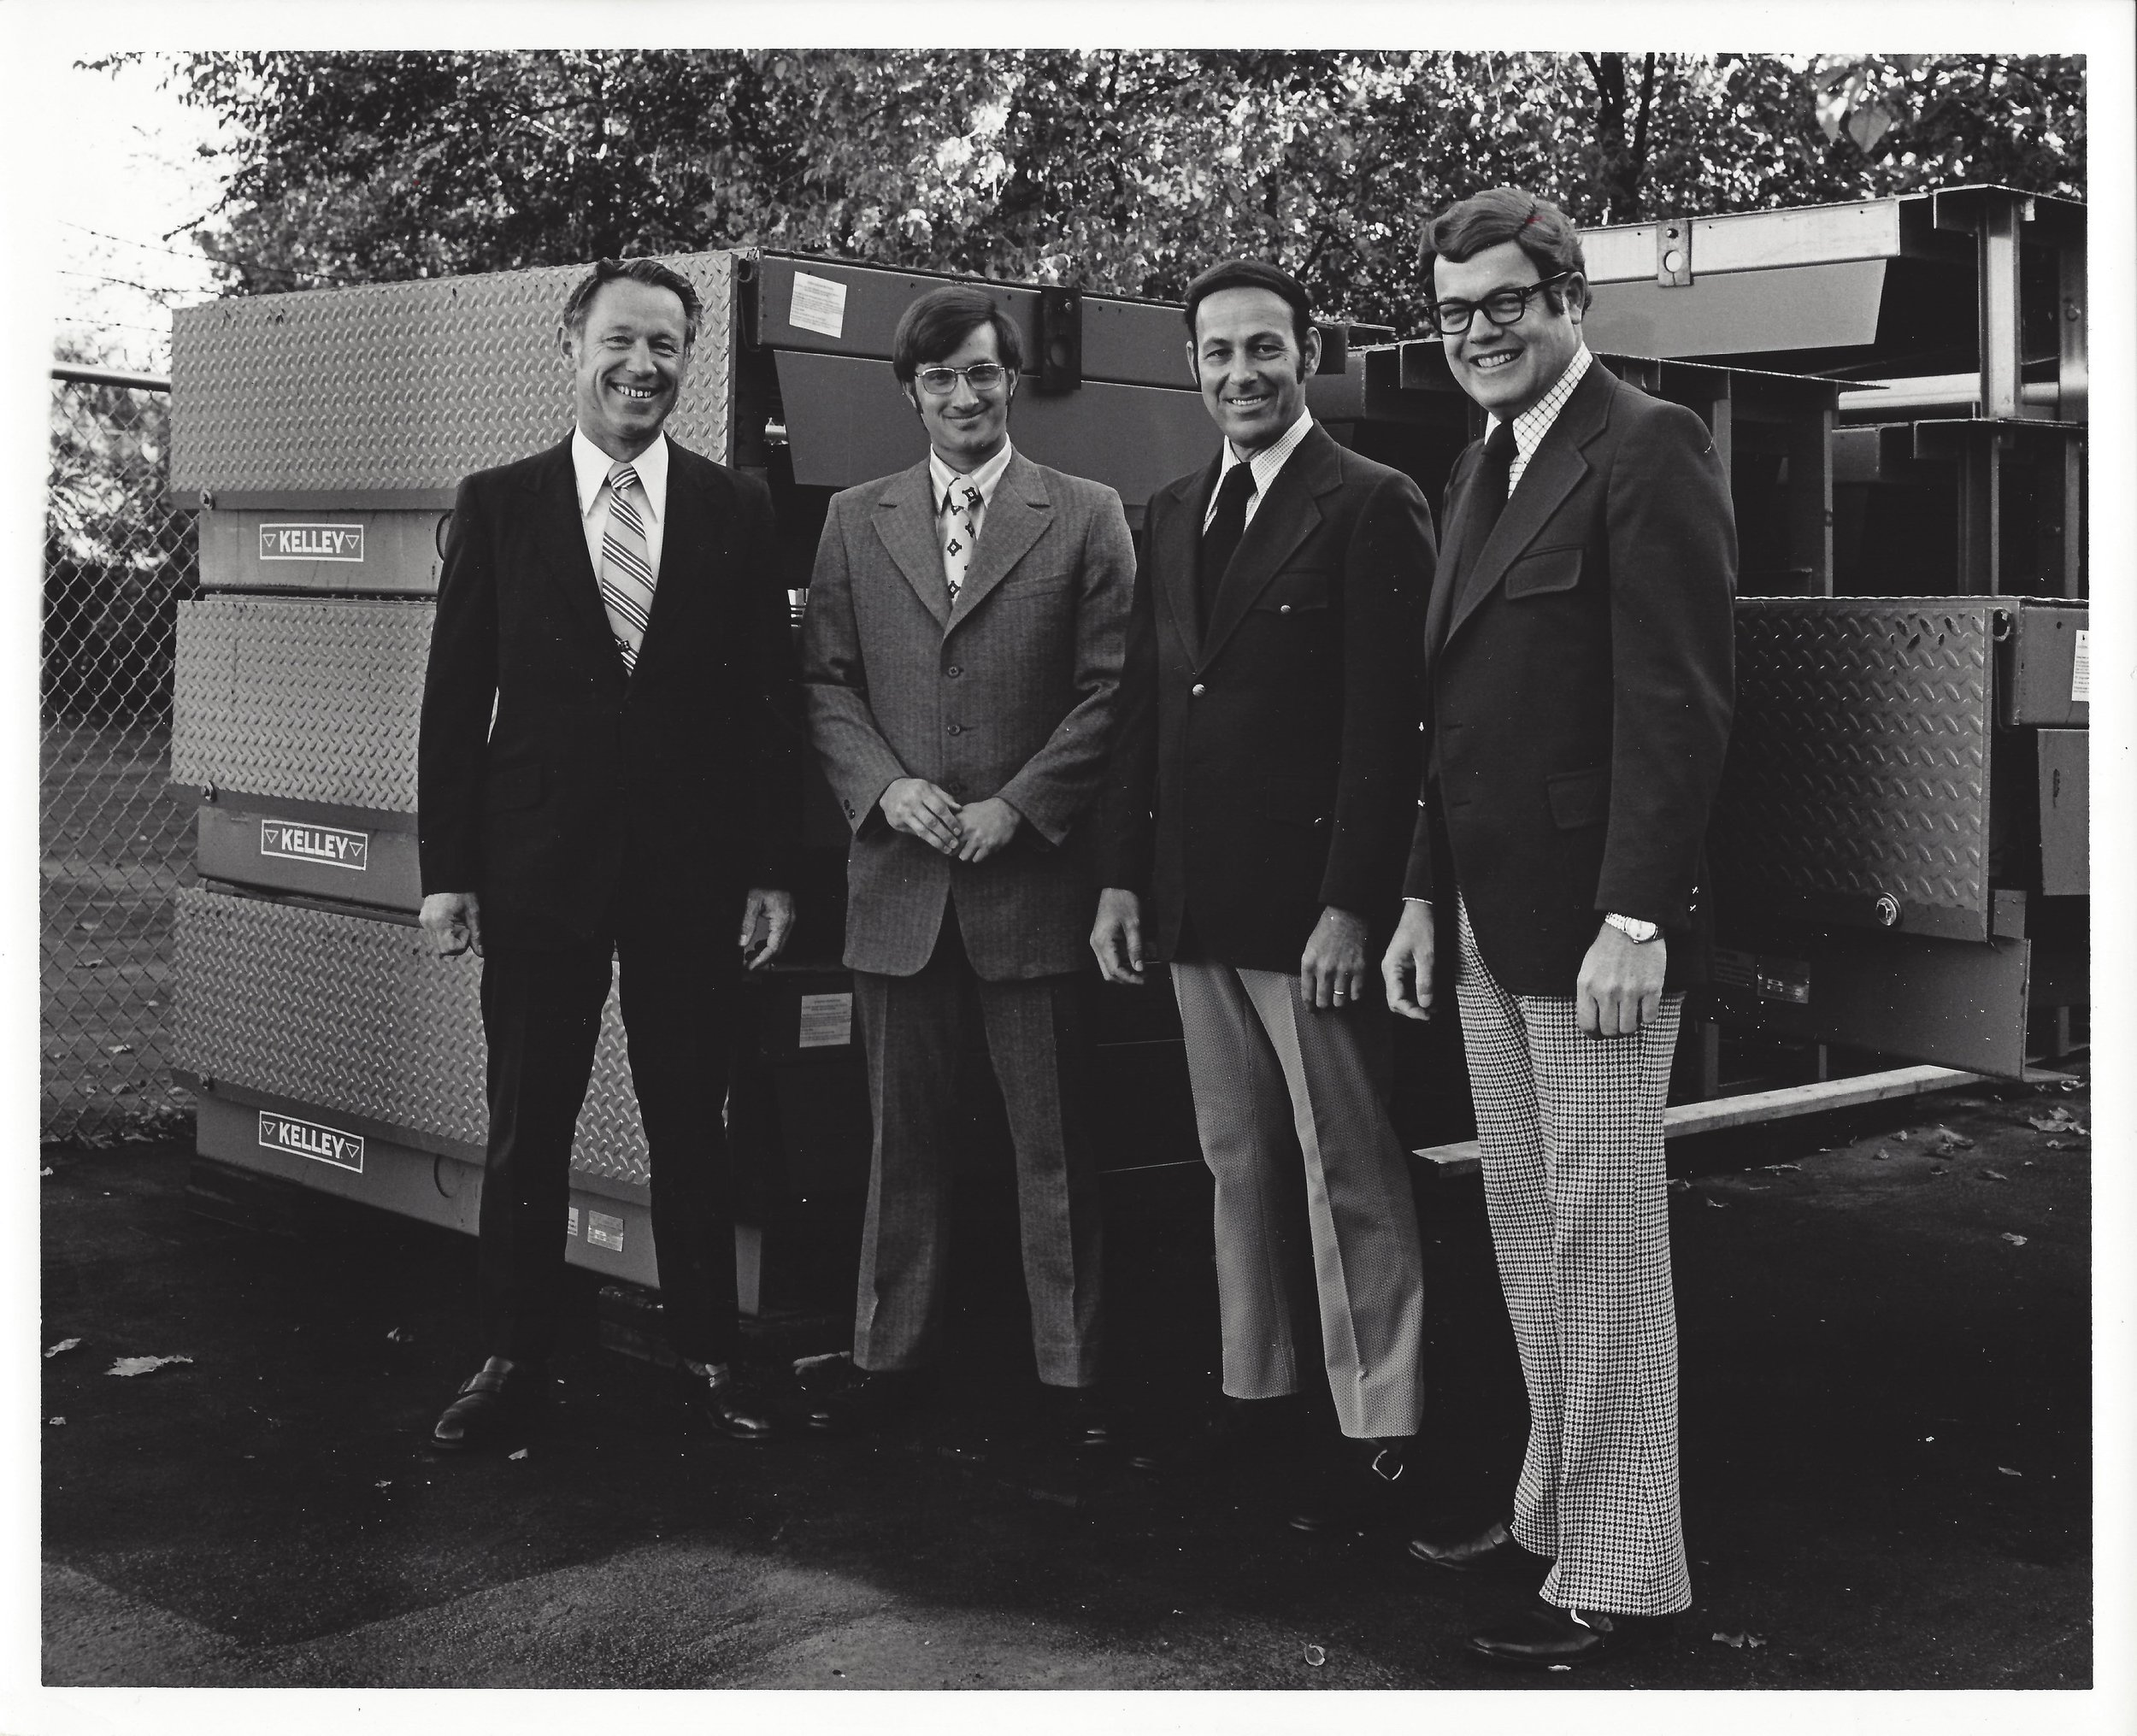 Wilber Penno, Dave Lee, Gene Havelka, and Bill Gibb circa 1970